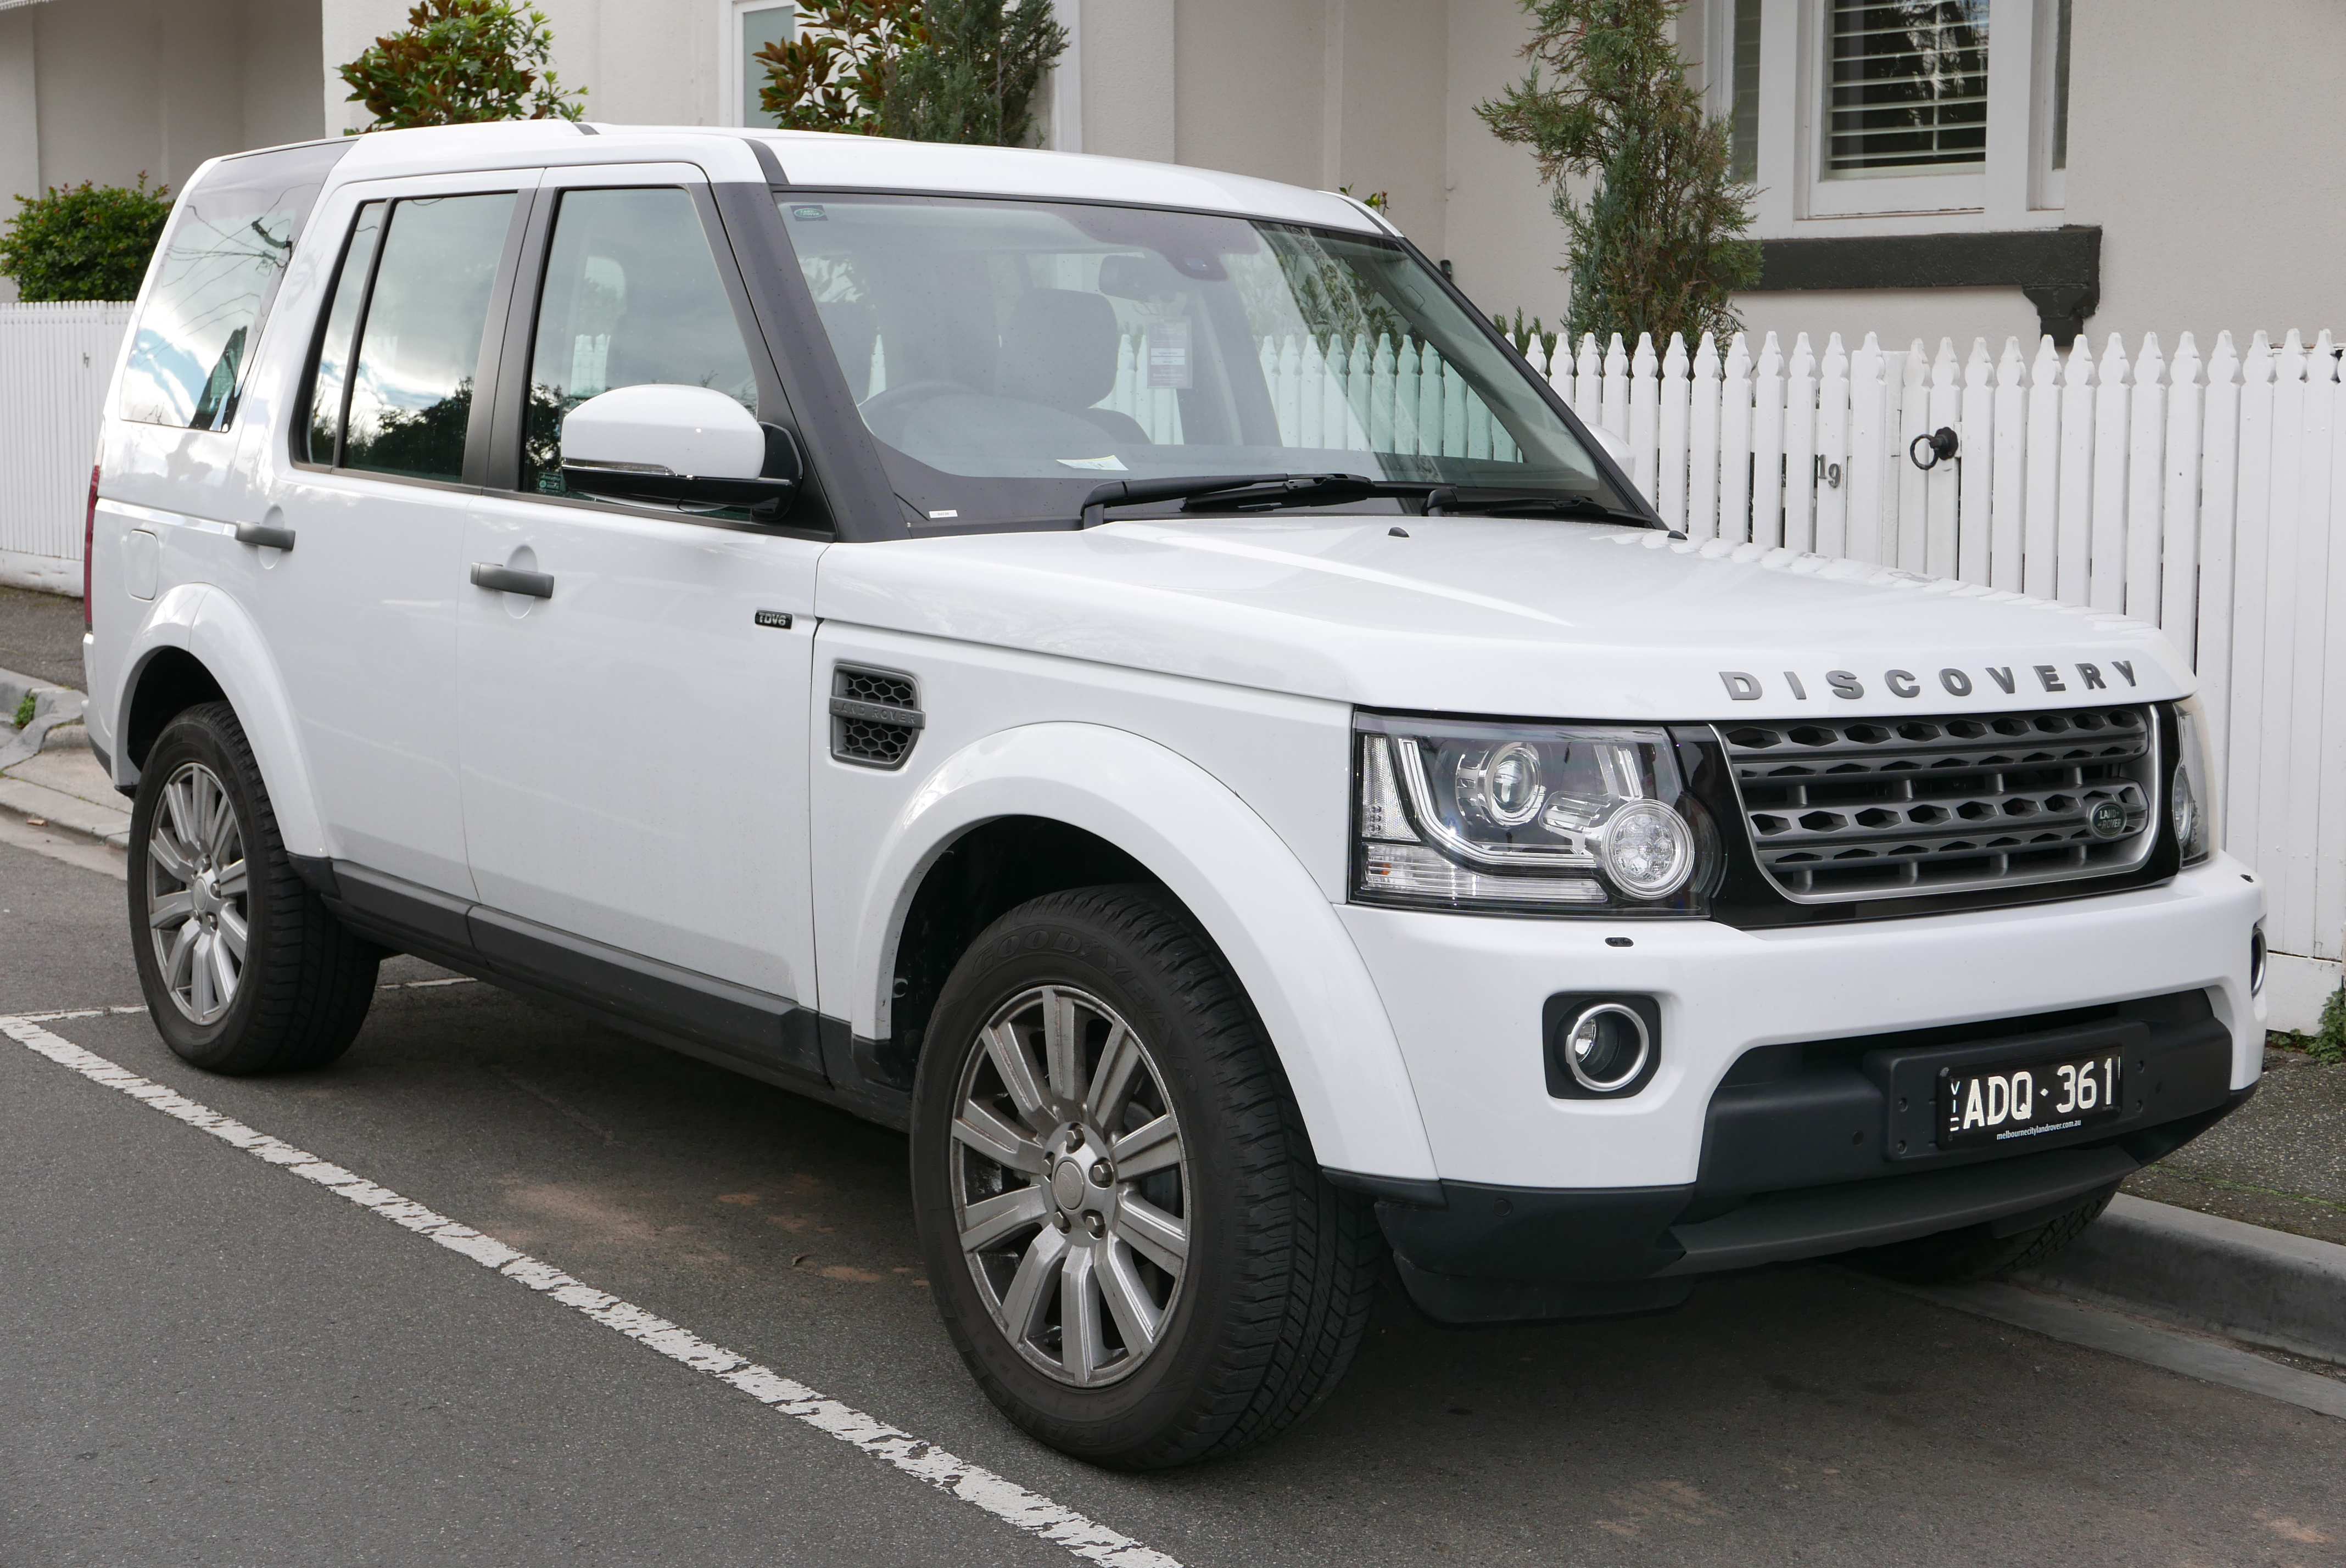 file 2015 land rover discovery l319 my15 tdv6 wagon 2015 07 24 wikimedia commons. Black Bedroom Furniture Sets. Home Design Ideas